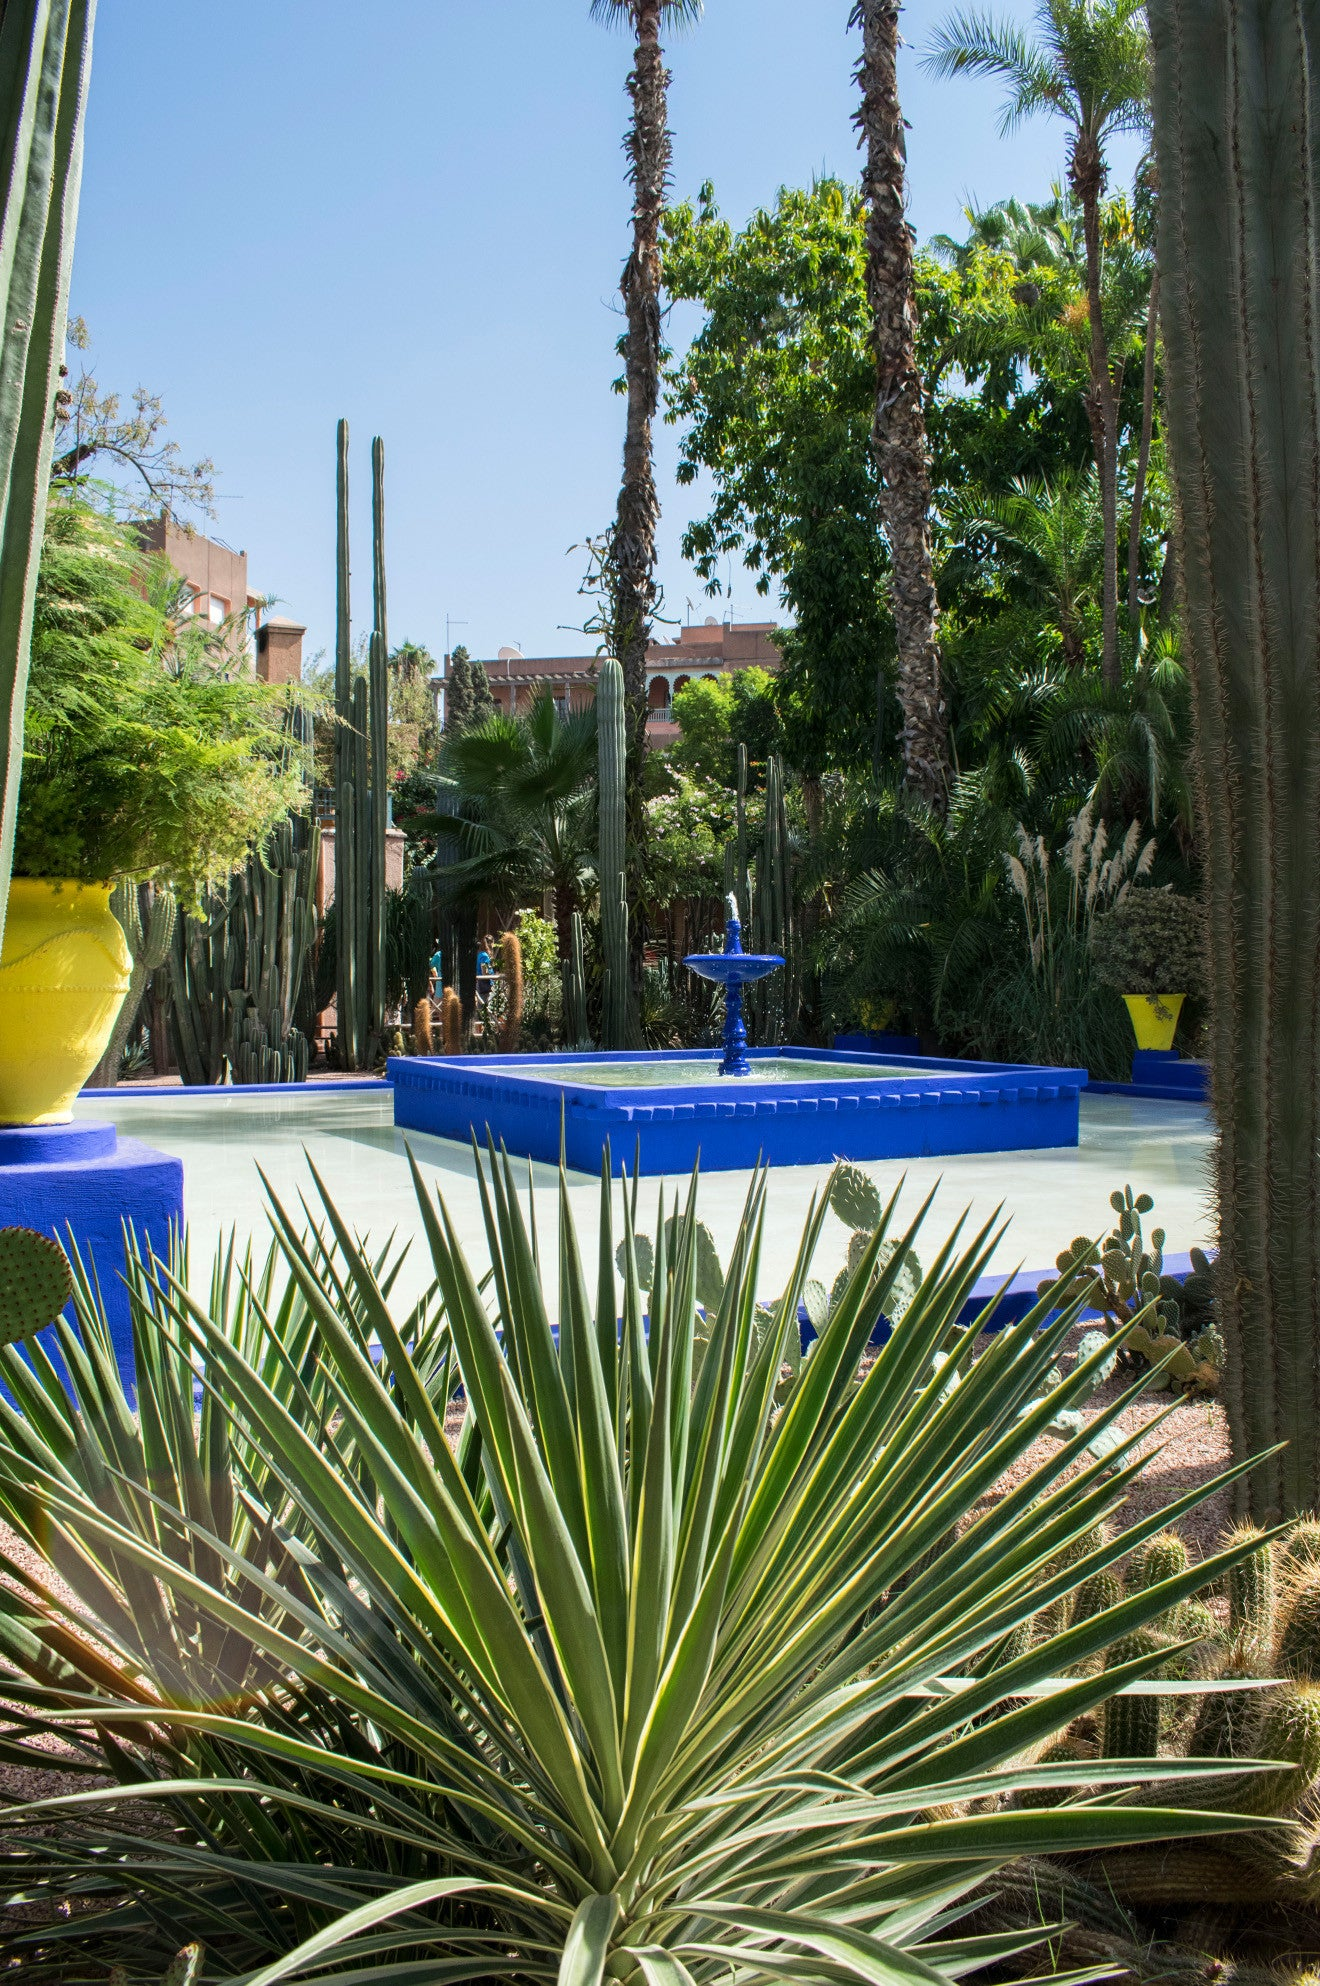 Visiting the YSL gardens in Marrakech with the blue fountain